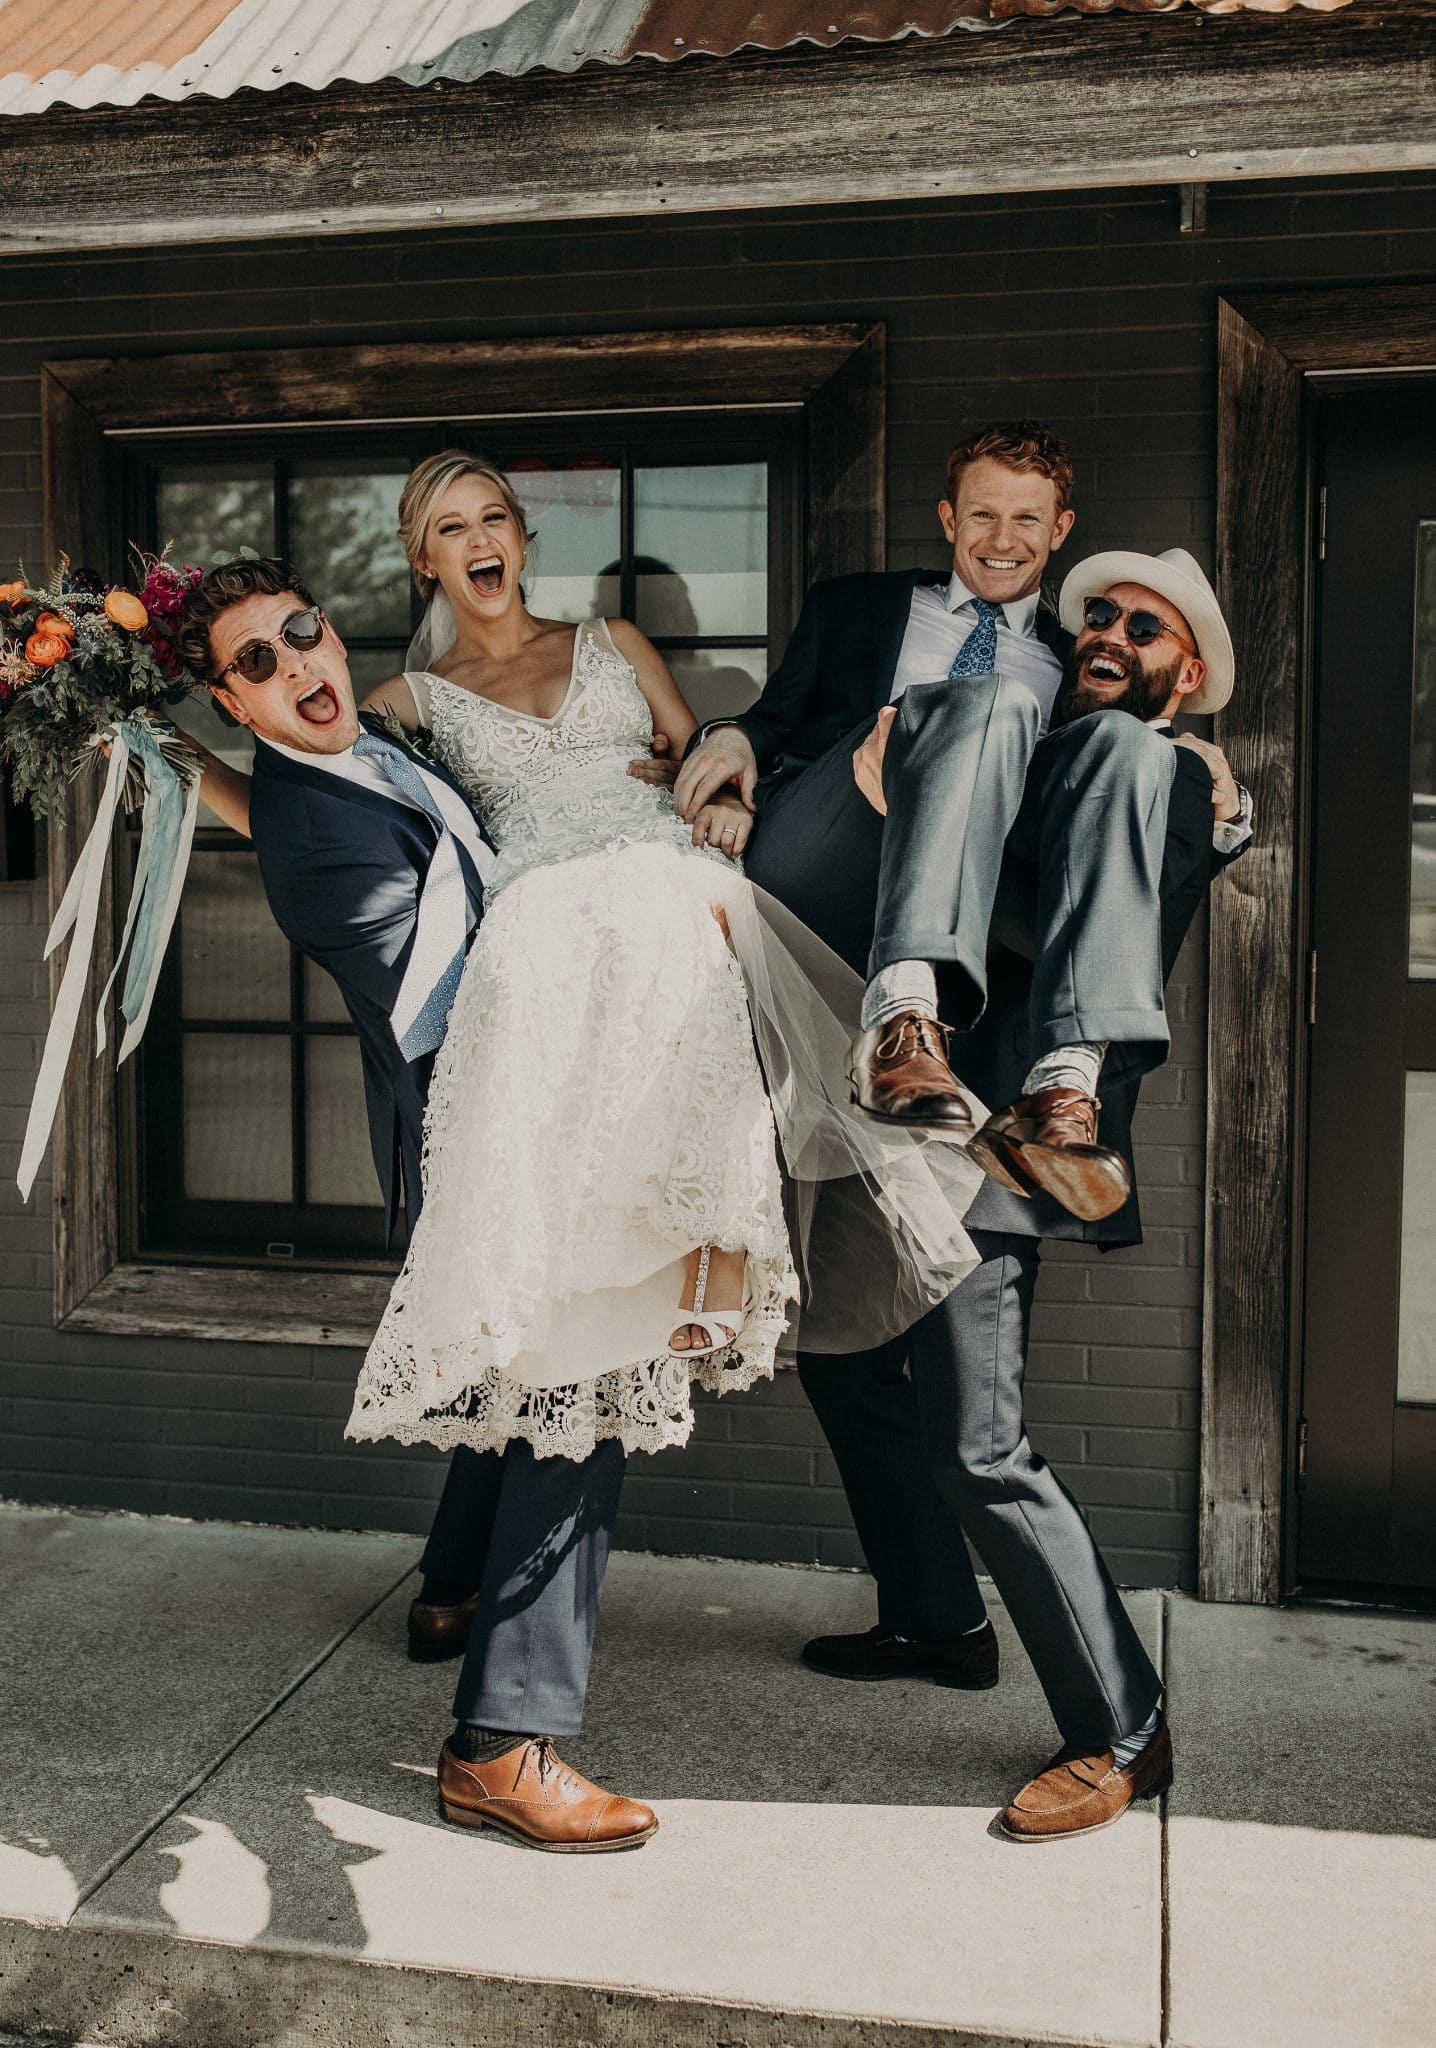 Two smiling groomsmen carrying a smiling and laughing bride with her bouquet and groom on the patio of a rustic home at Jacoby's restaurant in Austin, Texas. Photograph by Austin, Texas wedding photographer Nikk Nguyen.